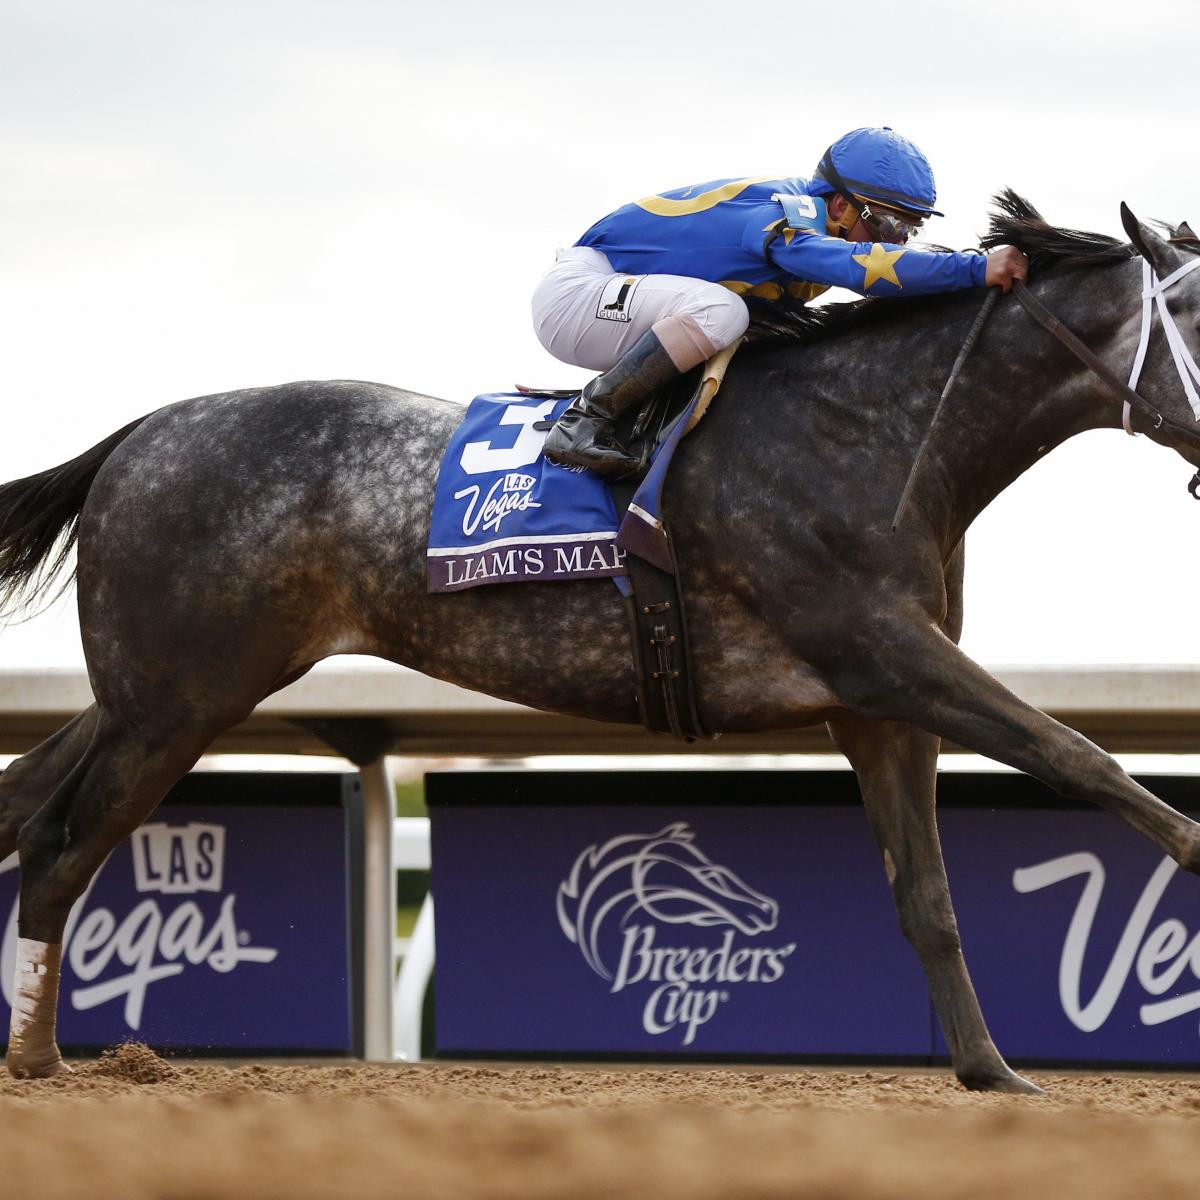 Breeders Cup 2015 Payouts Prize Money Purse Info For All Races On Friday Bleacher Report Latest News Videos And Highlights